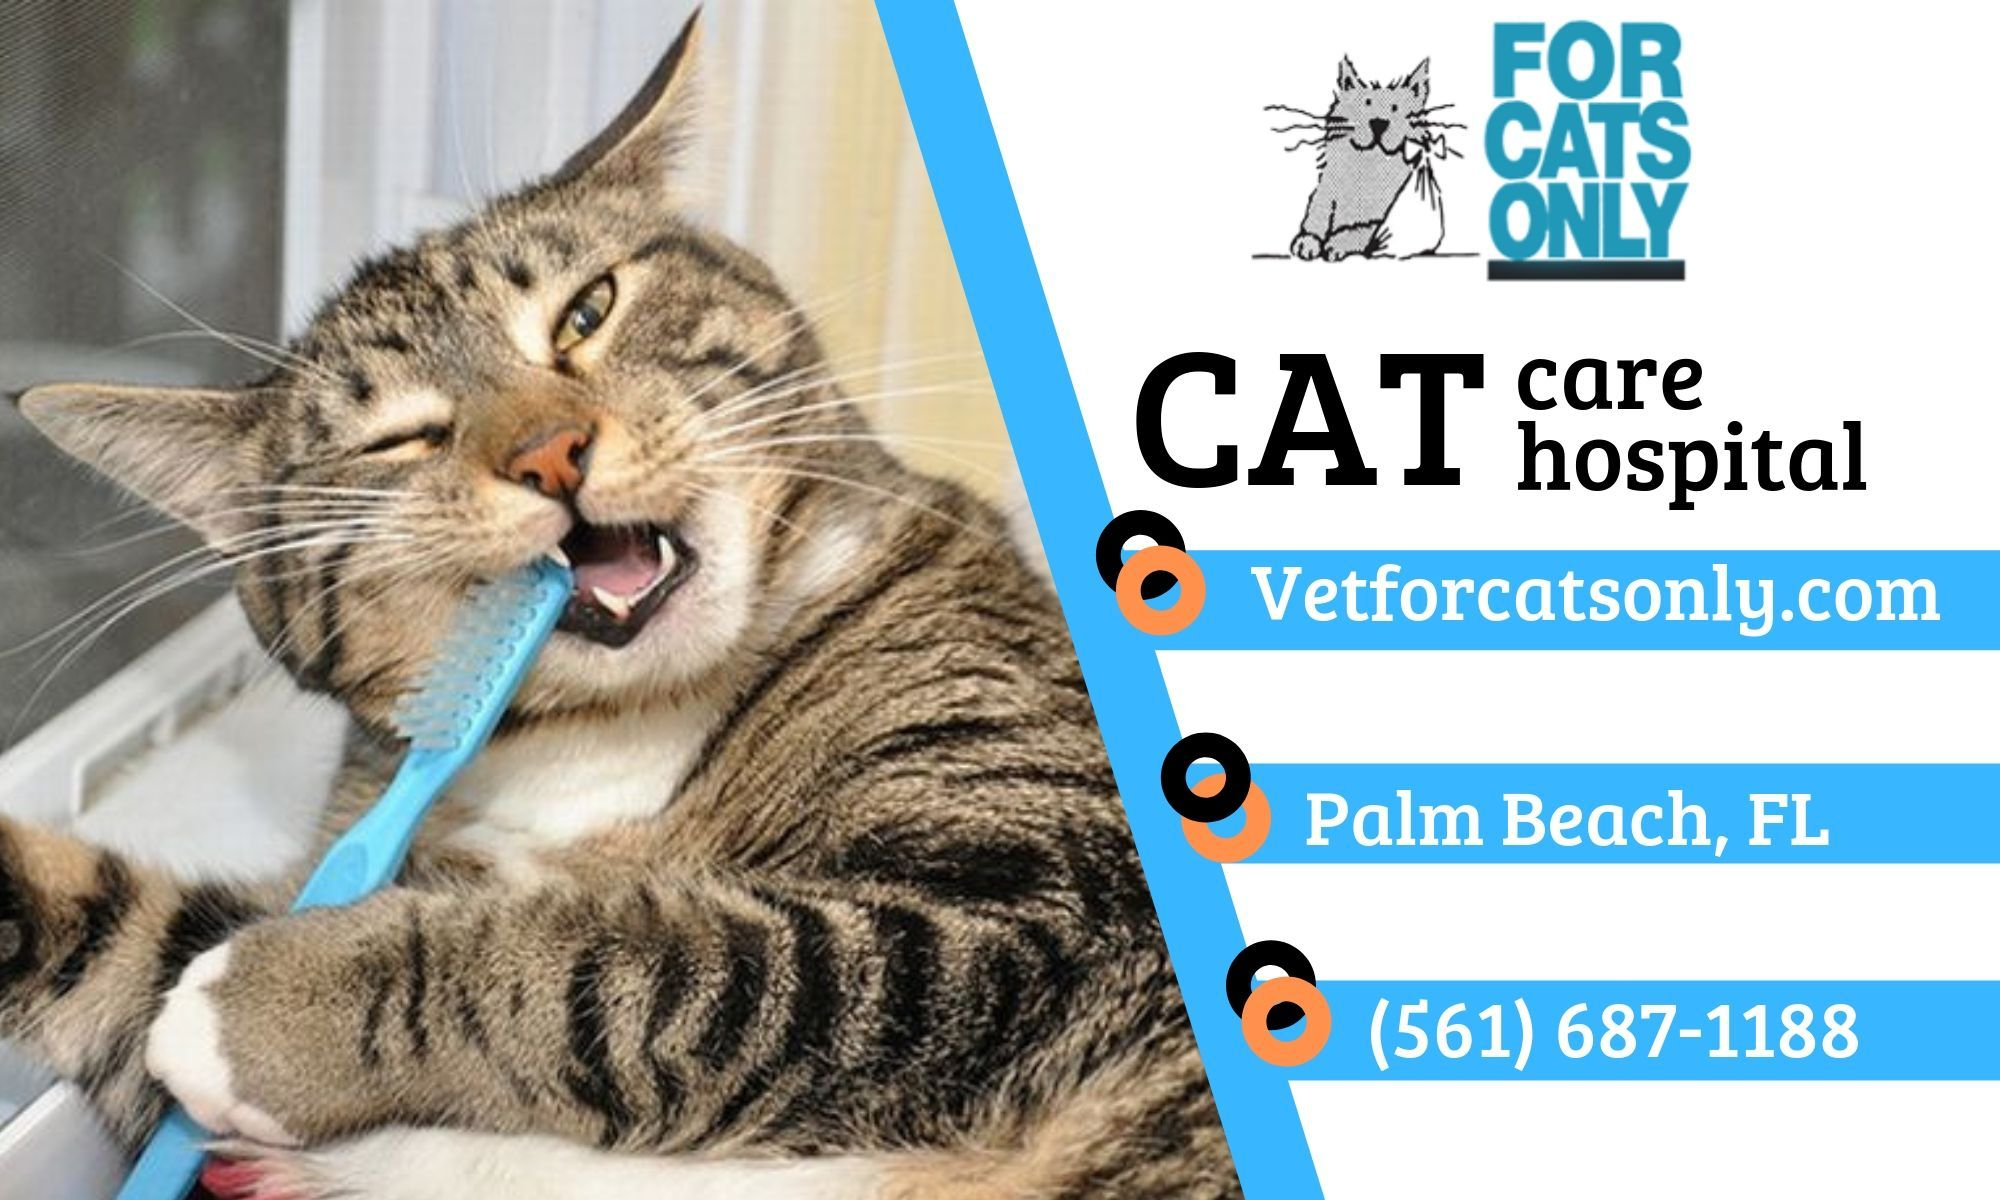 Pin by vetforcatsonly . on Cute cat Veterinary services